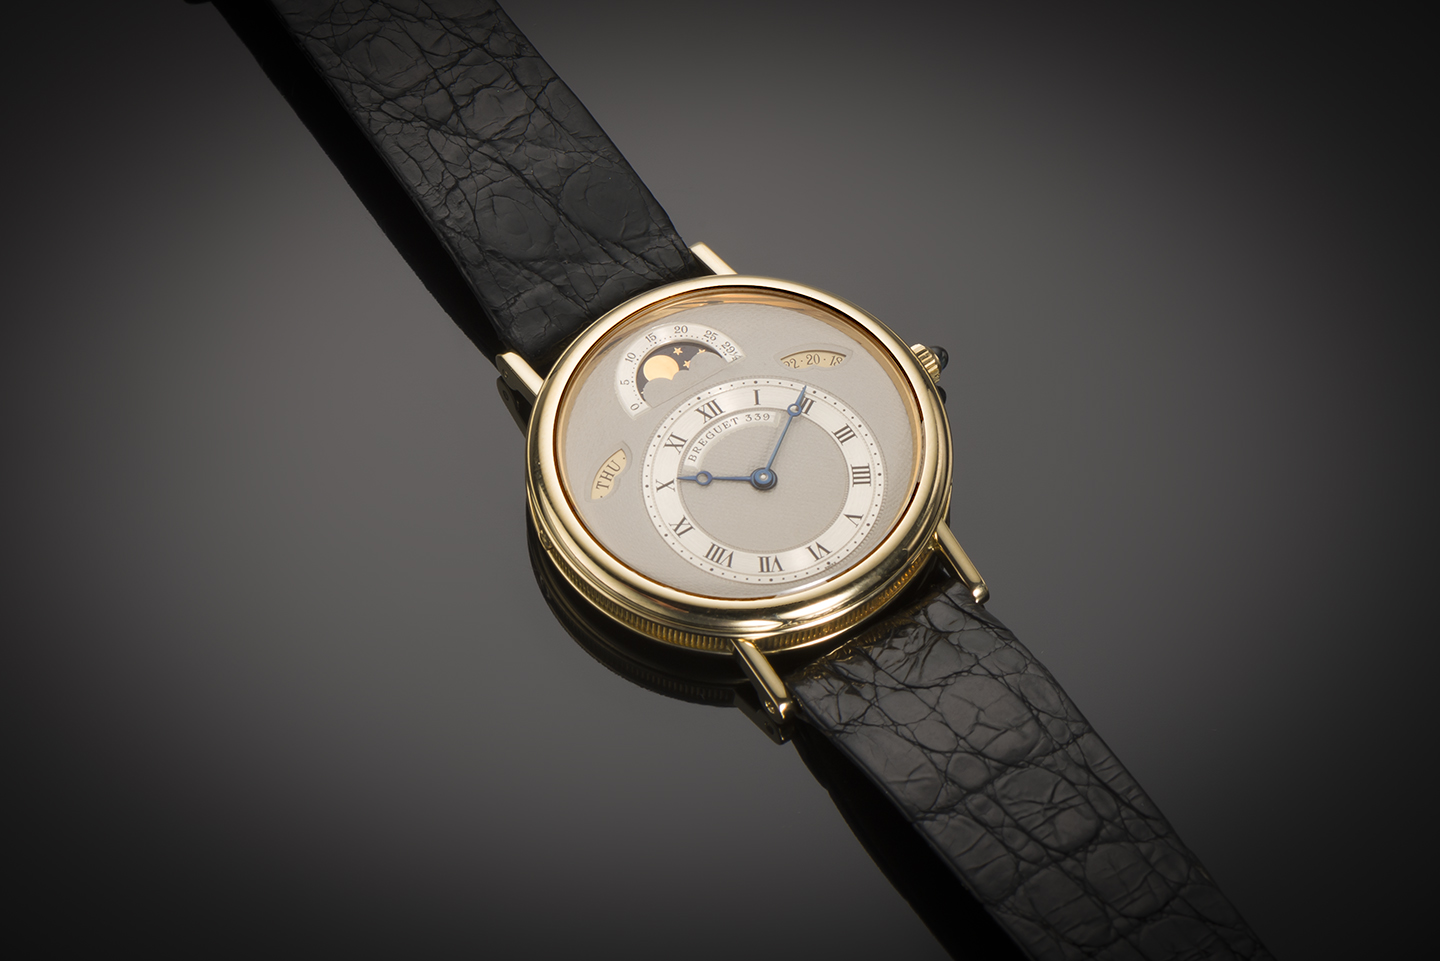 Montre Breguet à complications-1